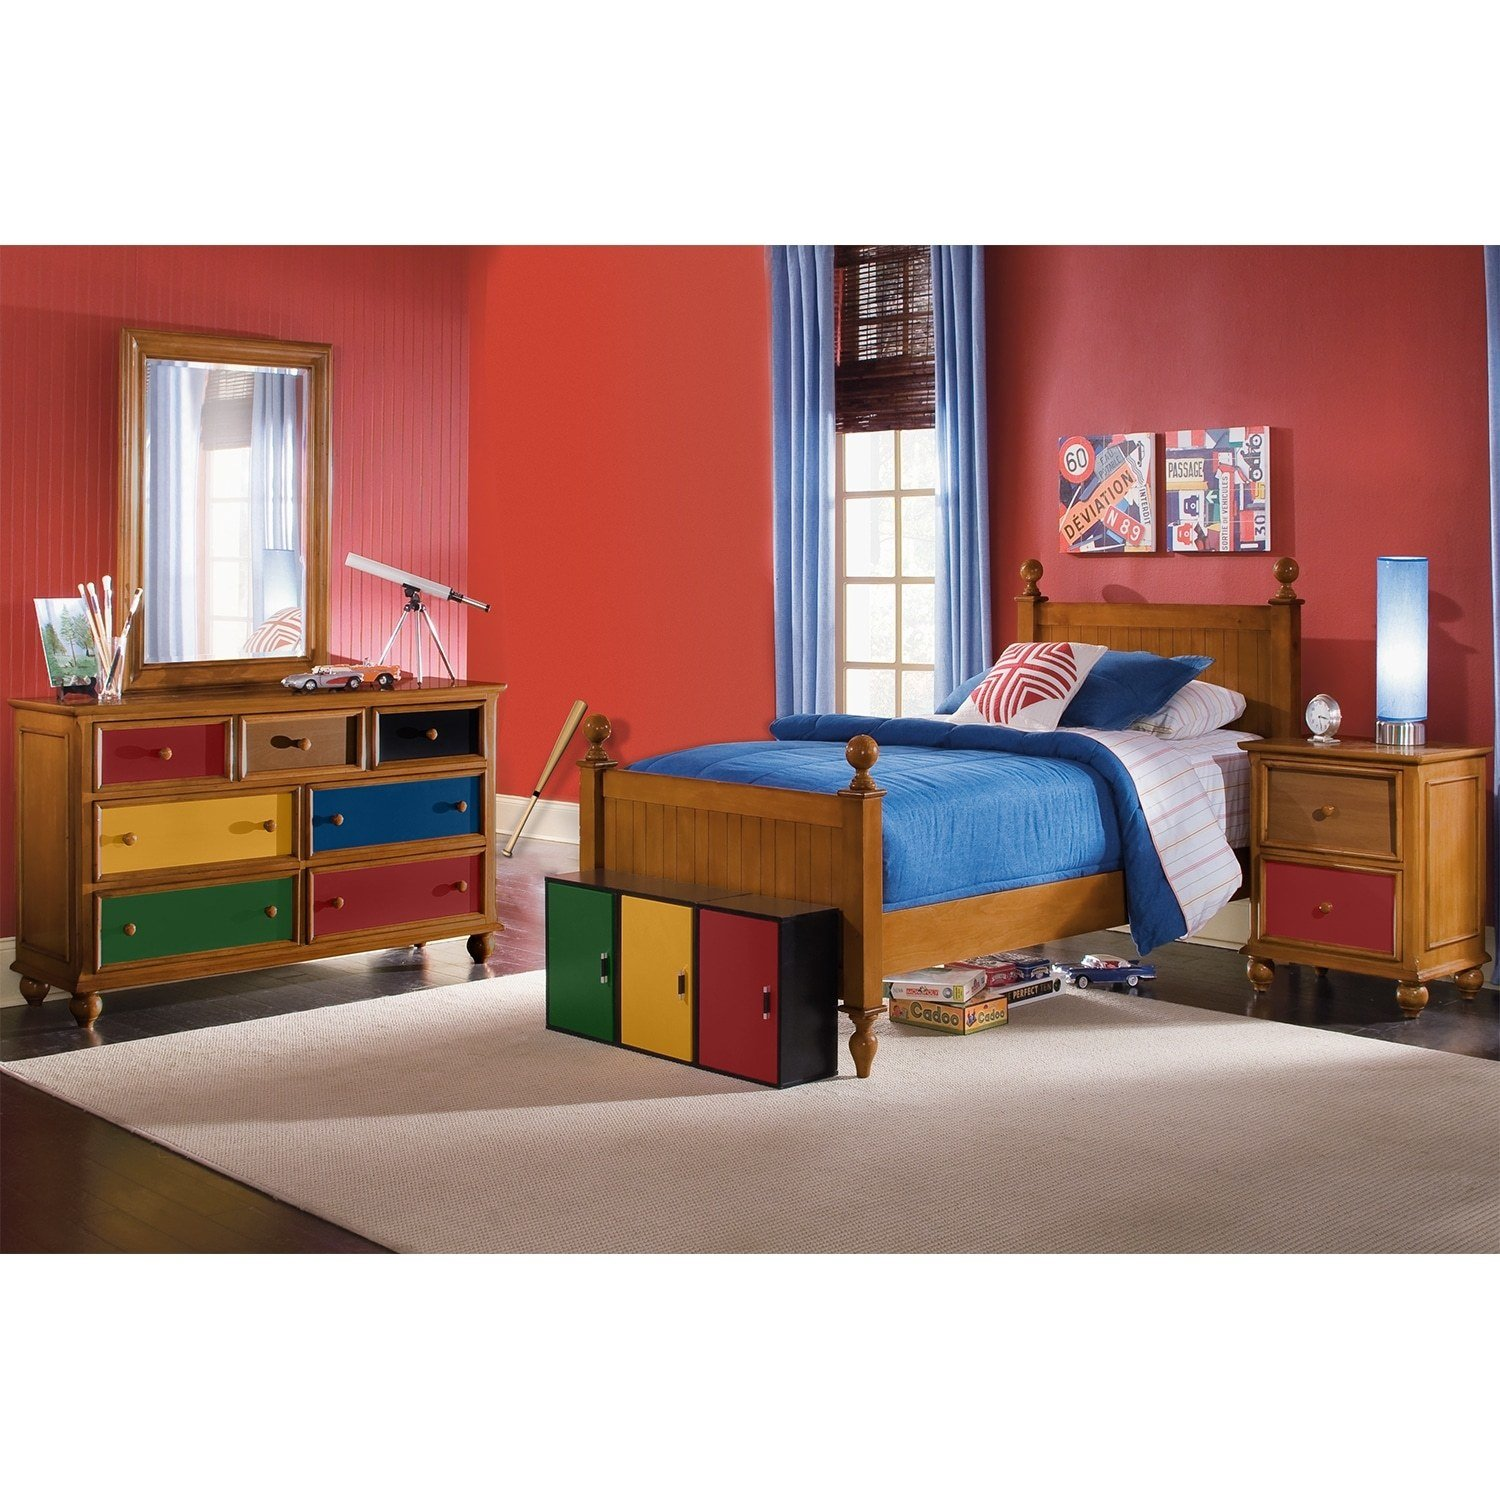 Best Colorworks Pine Kids Furniture 6 Pc Twin Bedroom Value With Pictures